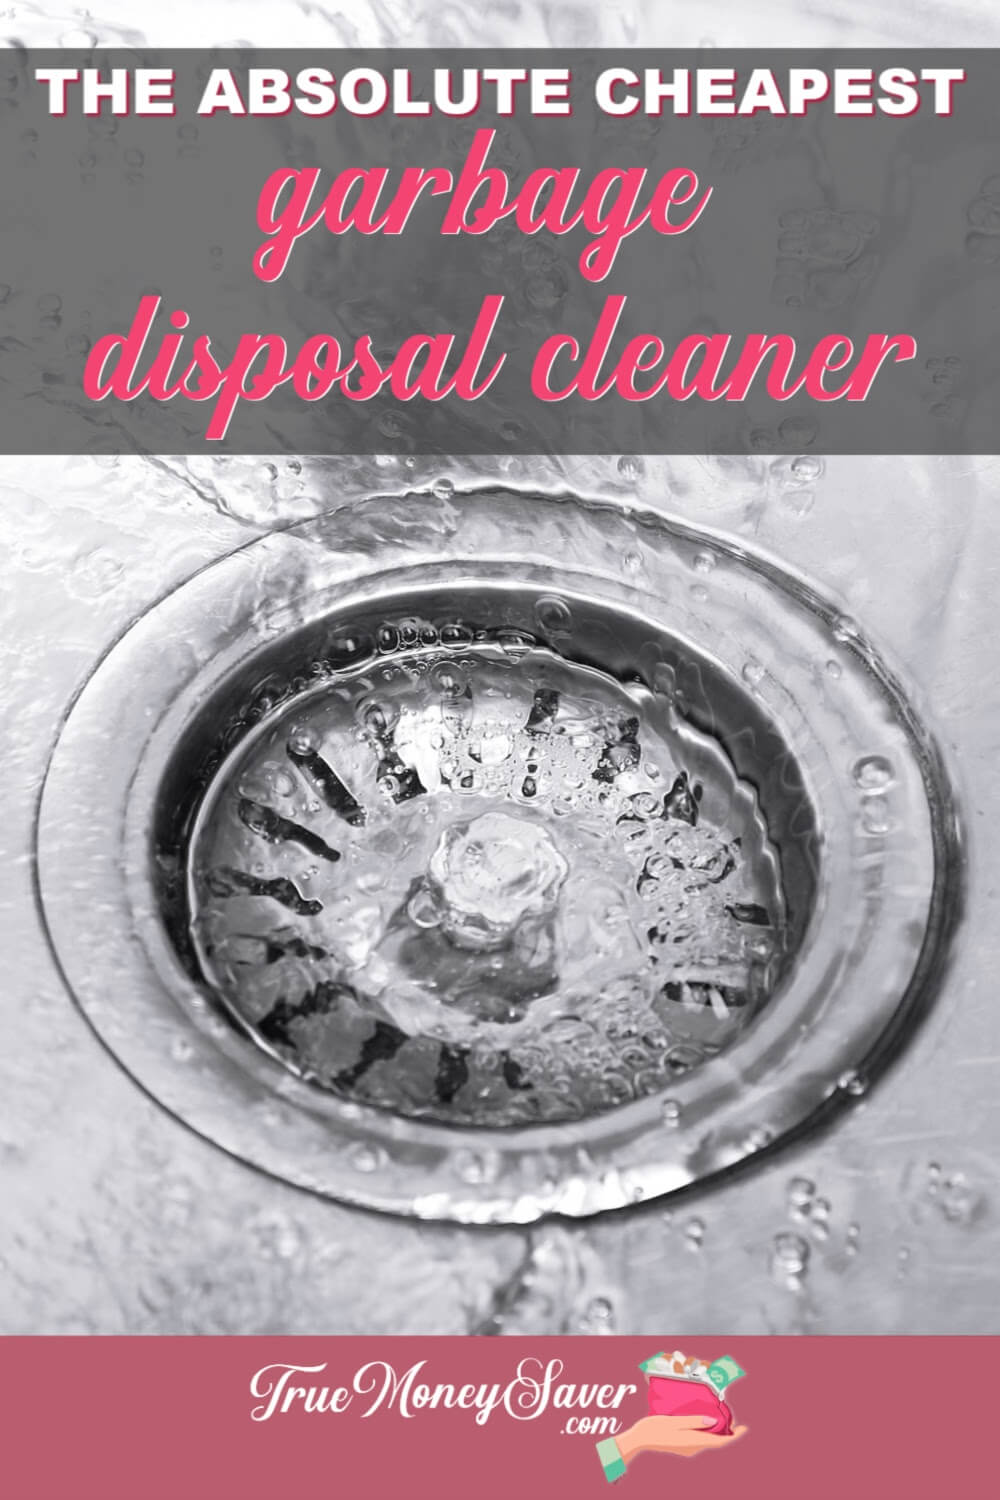 How To Clean A Stinking Garbage Disposal Easily